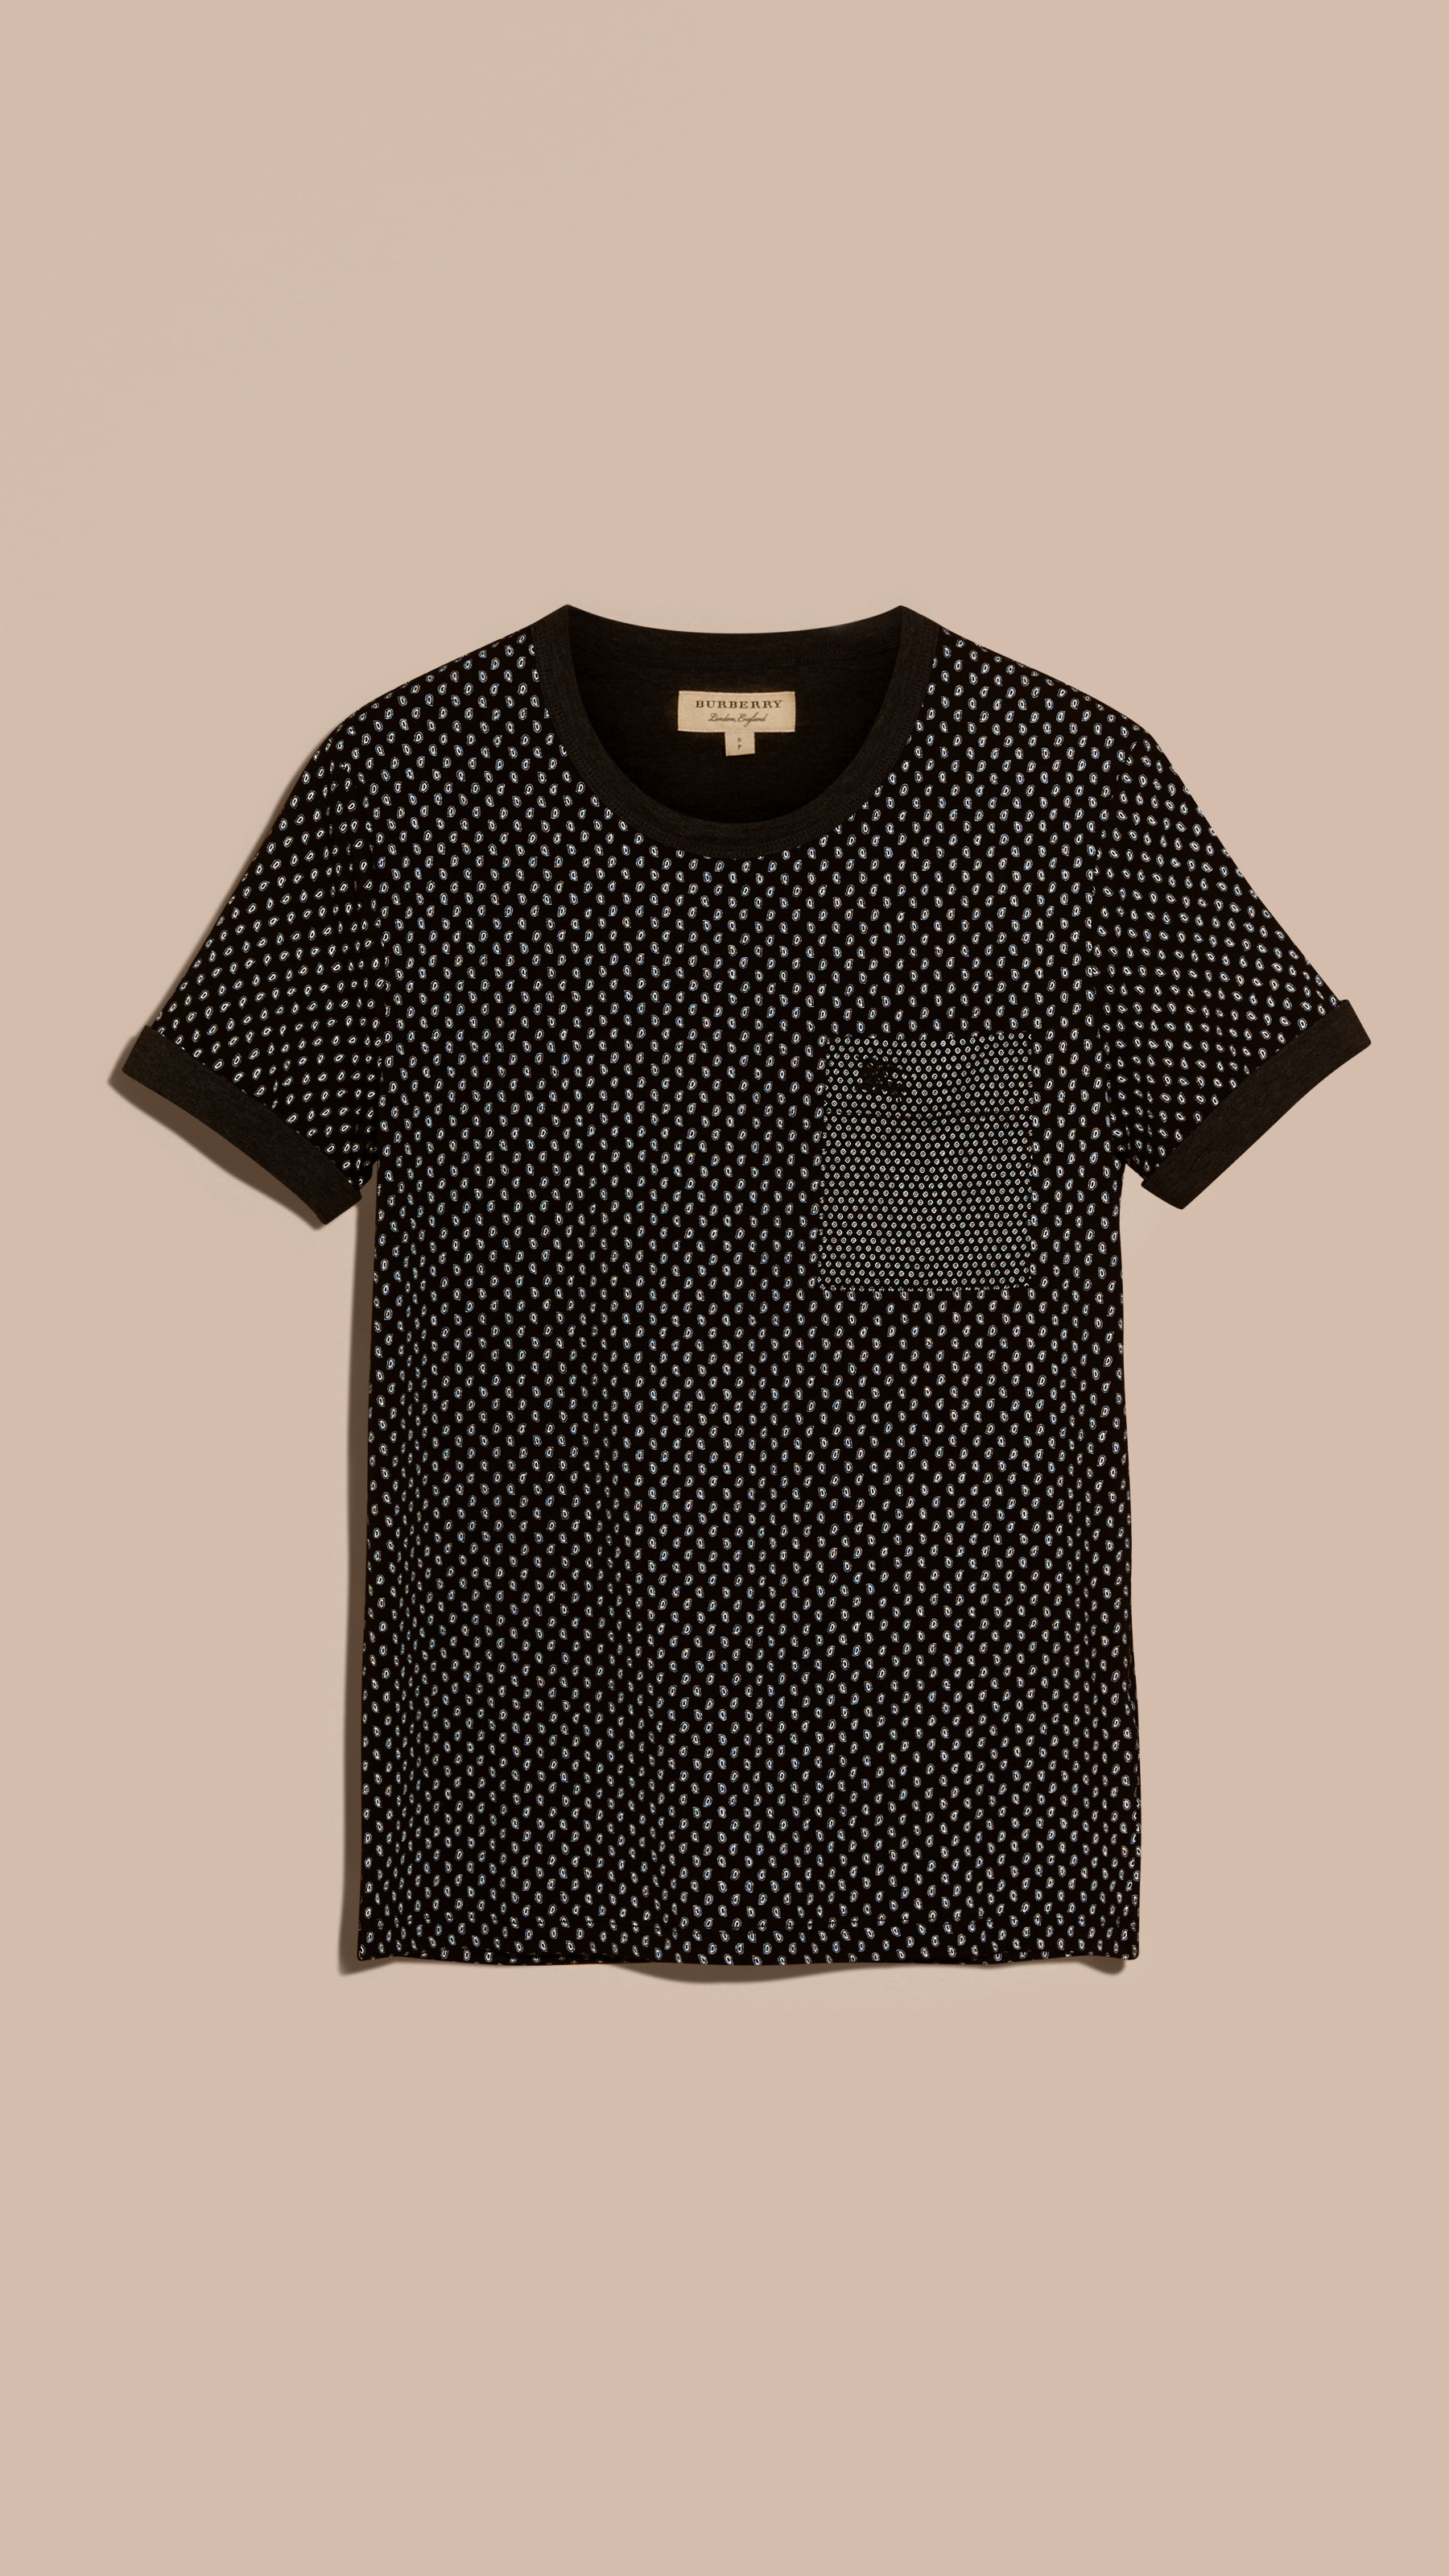 Burberry Paisley Cotton T Shirt Black In Black For Men Lyst